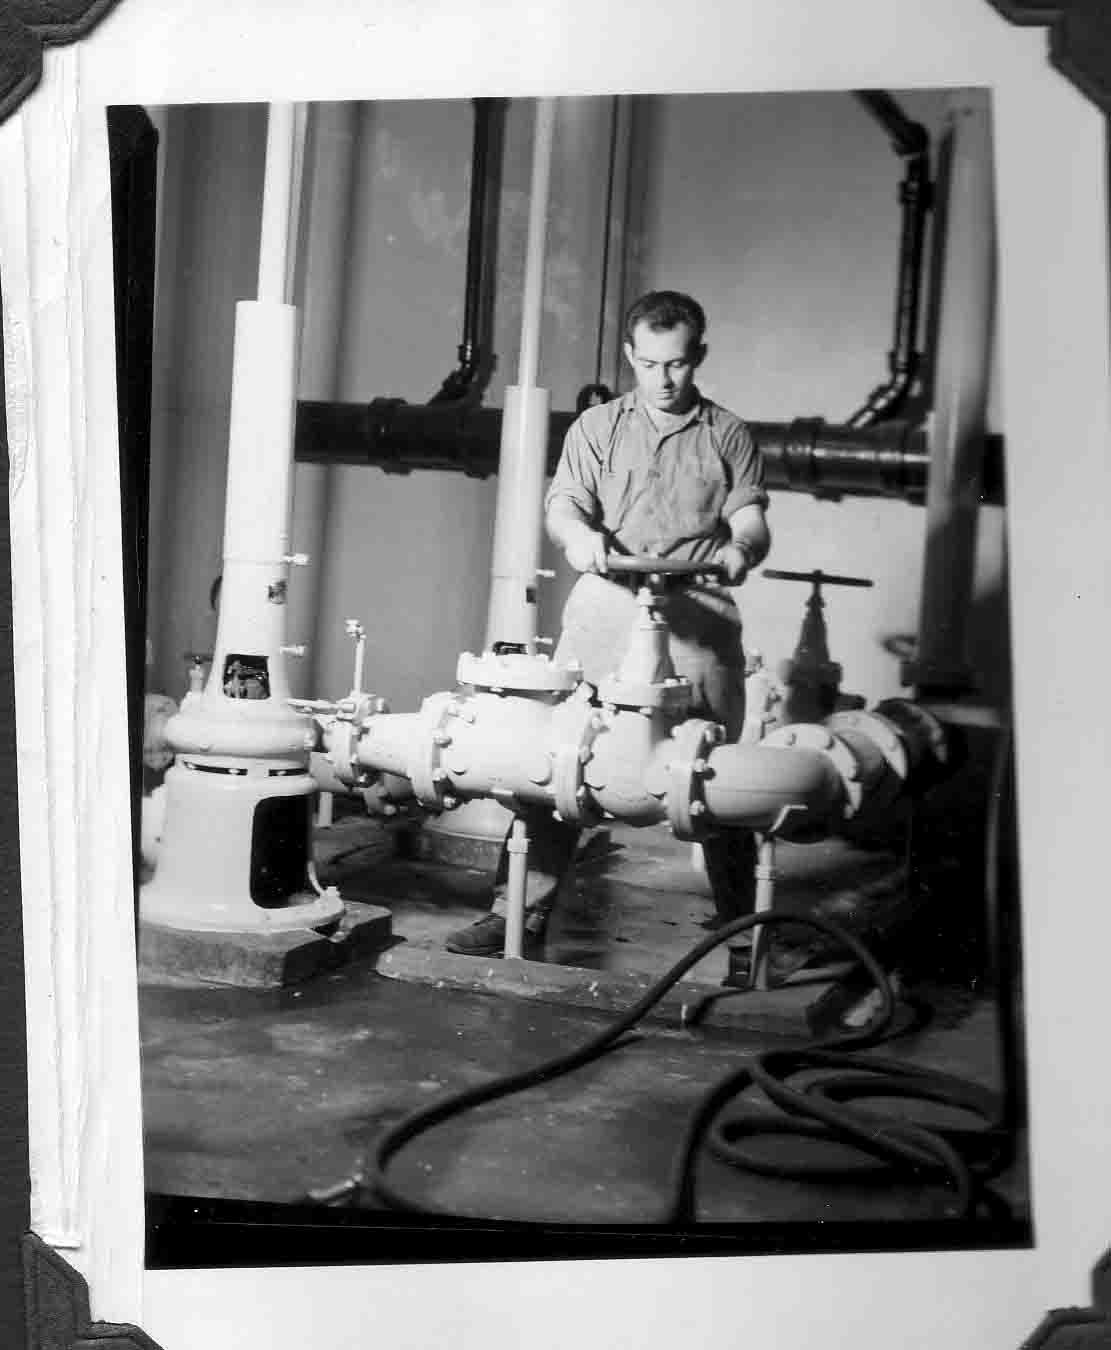 1959 Gas pipe cleaning AC plant a